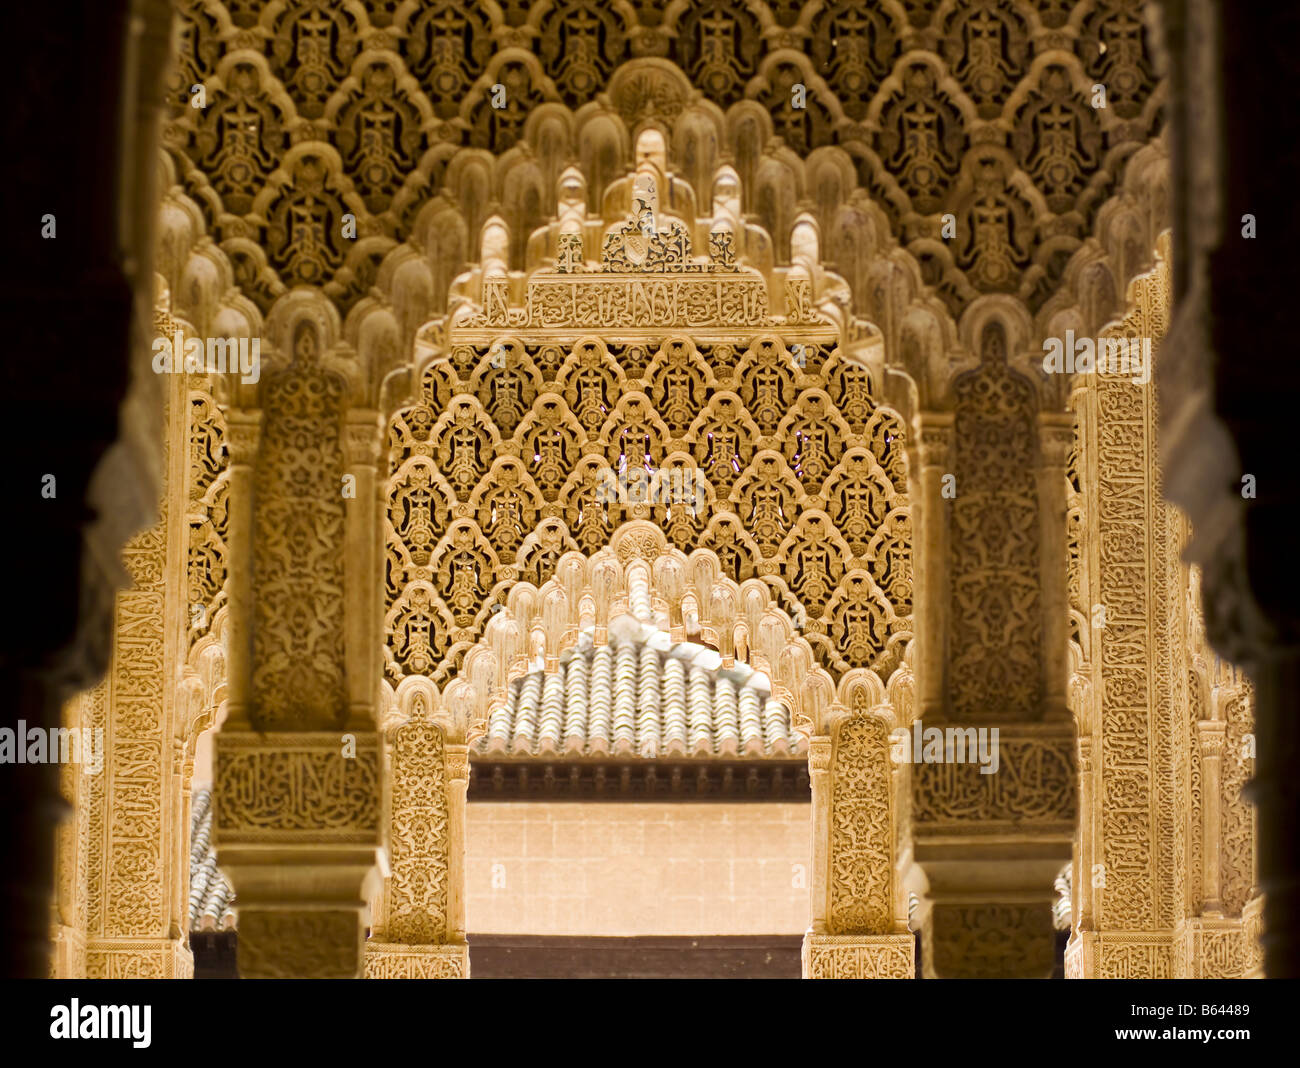 Architecture interior detail aat the Alhambra  Granada  Andalusia     Architecture interior detail aat the Alhambra  Granada  Andalusia  Spain   Europe  Licenced  Chris Kewish